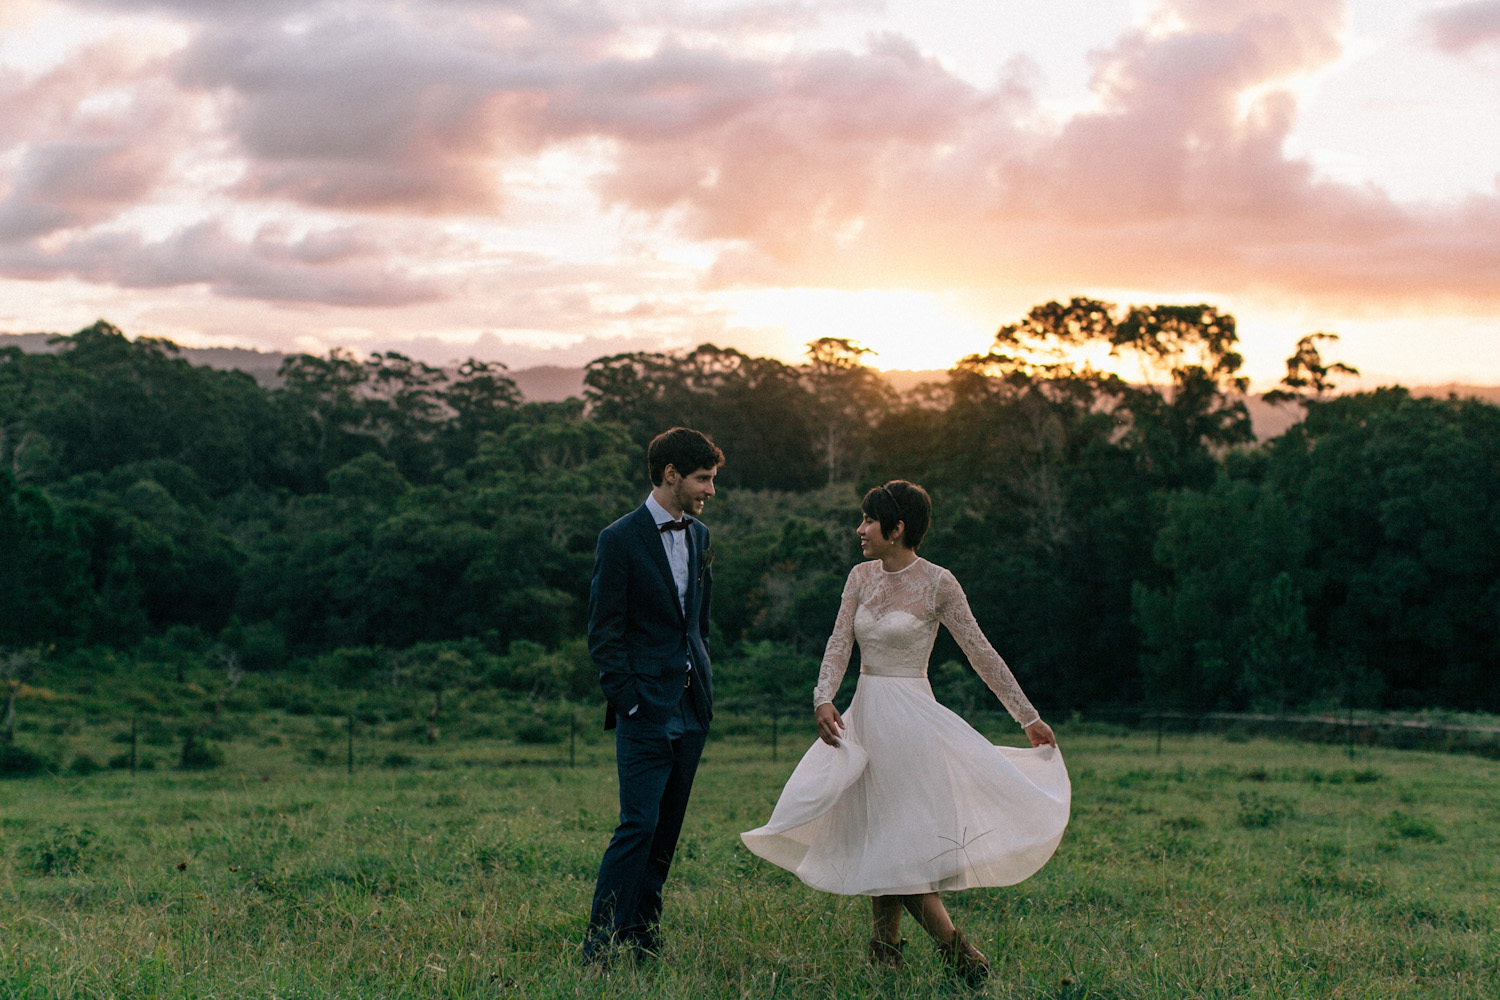 jazzyconnorsphotography_emily&lachlan223.jpg